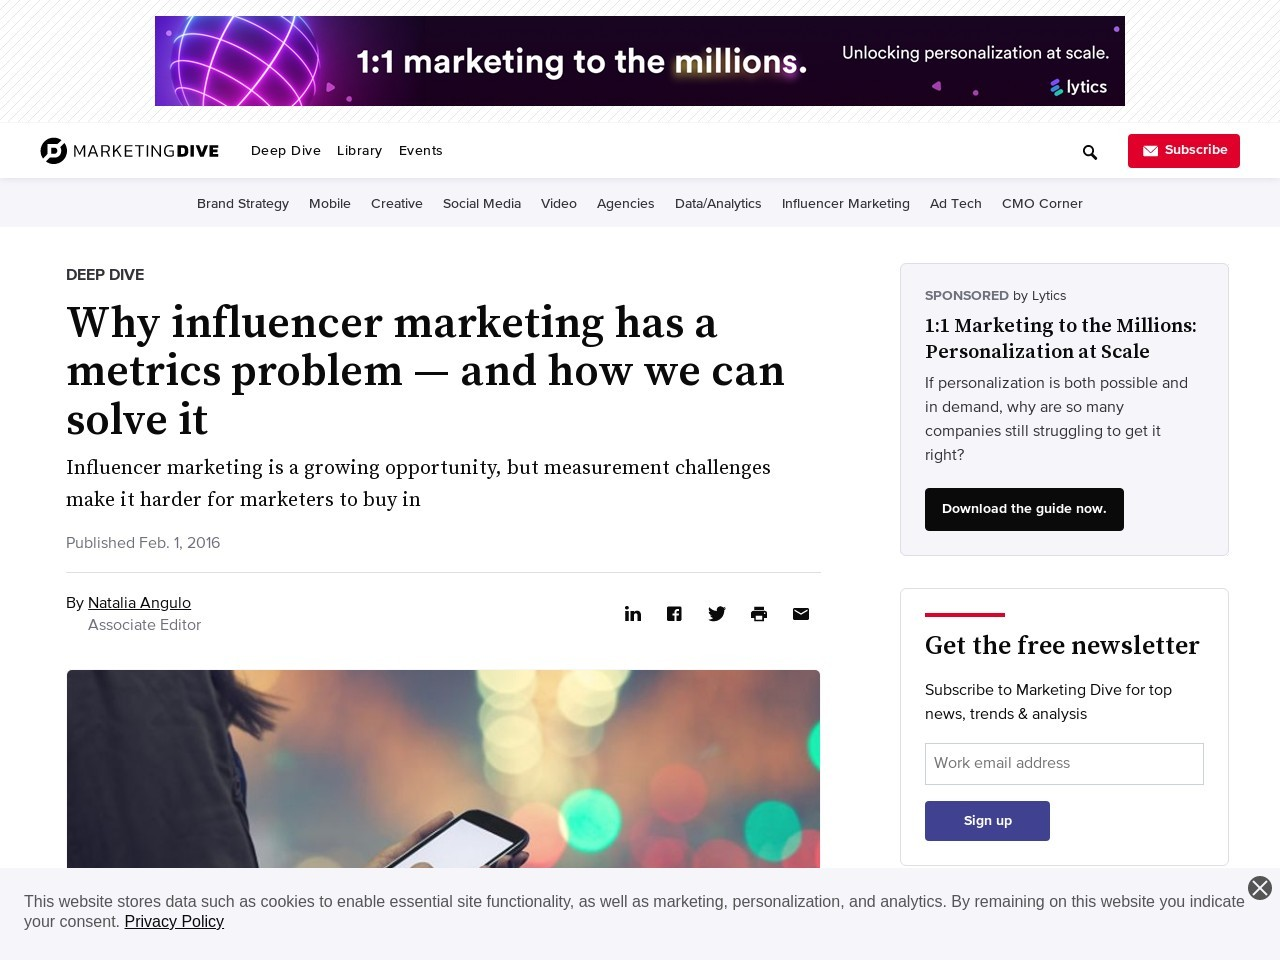 Why influencer marketing has a metrics problem — and how we can solve it